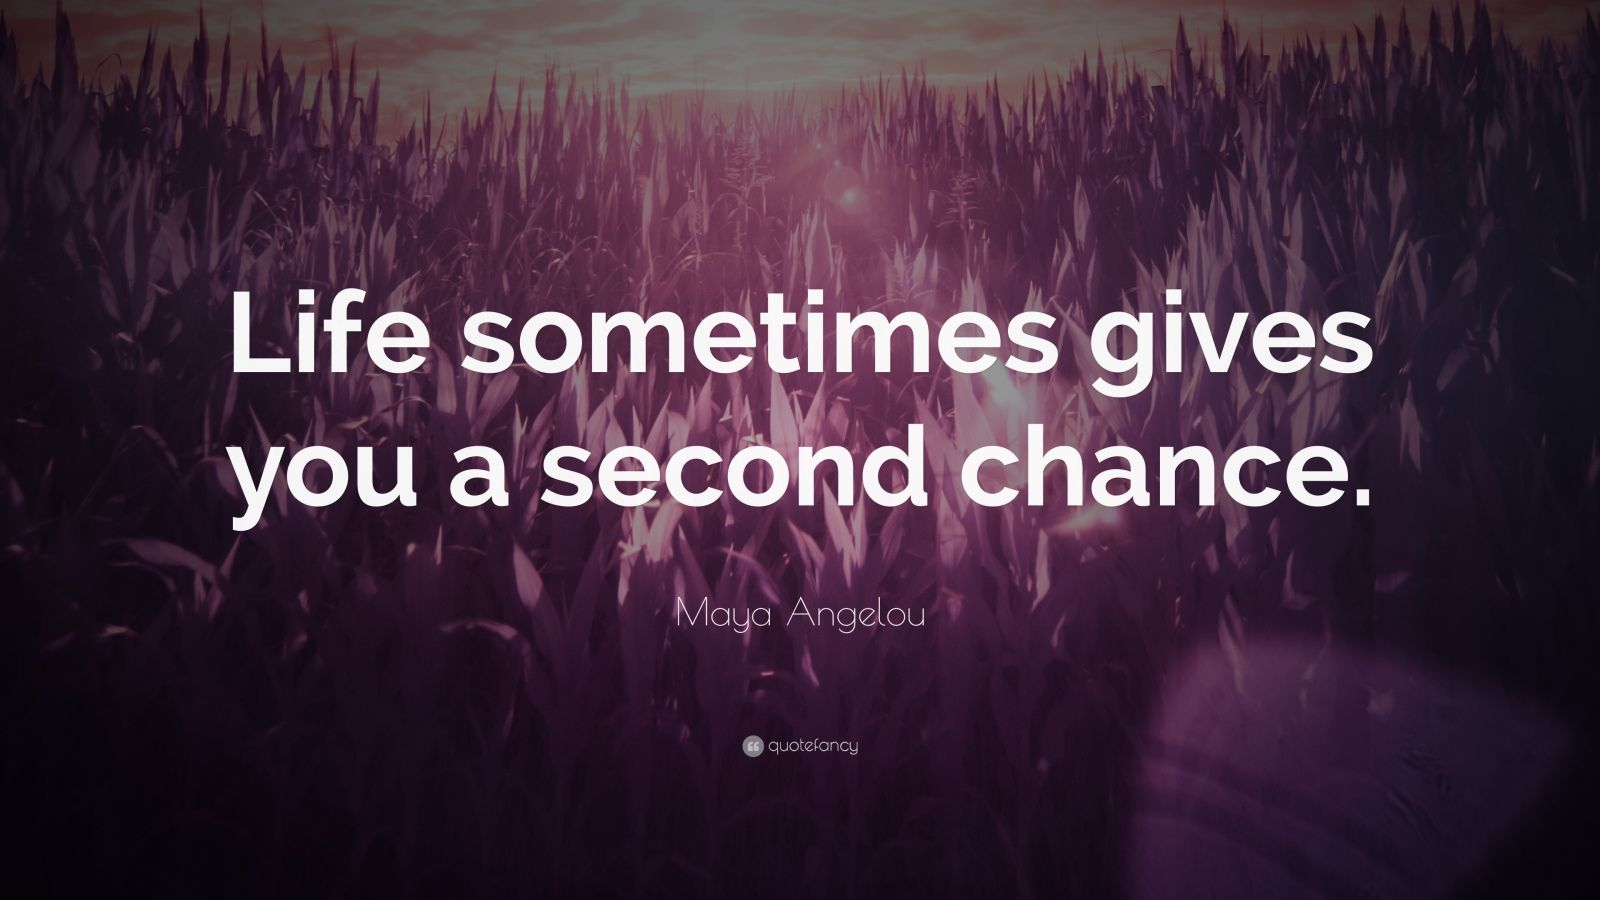 """Maya Angelou Quote: """"Life sometimes gives you a second chance."""""""